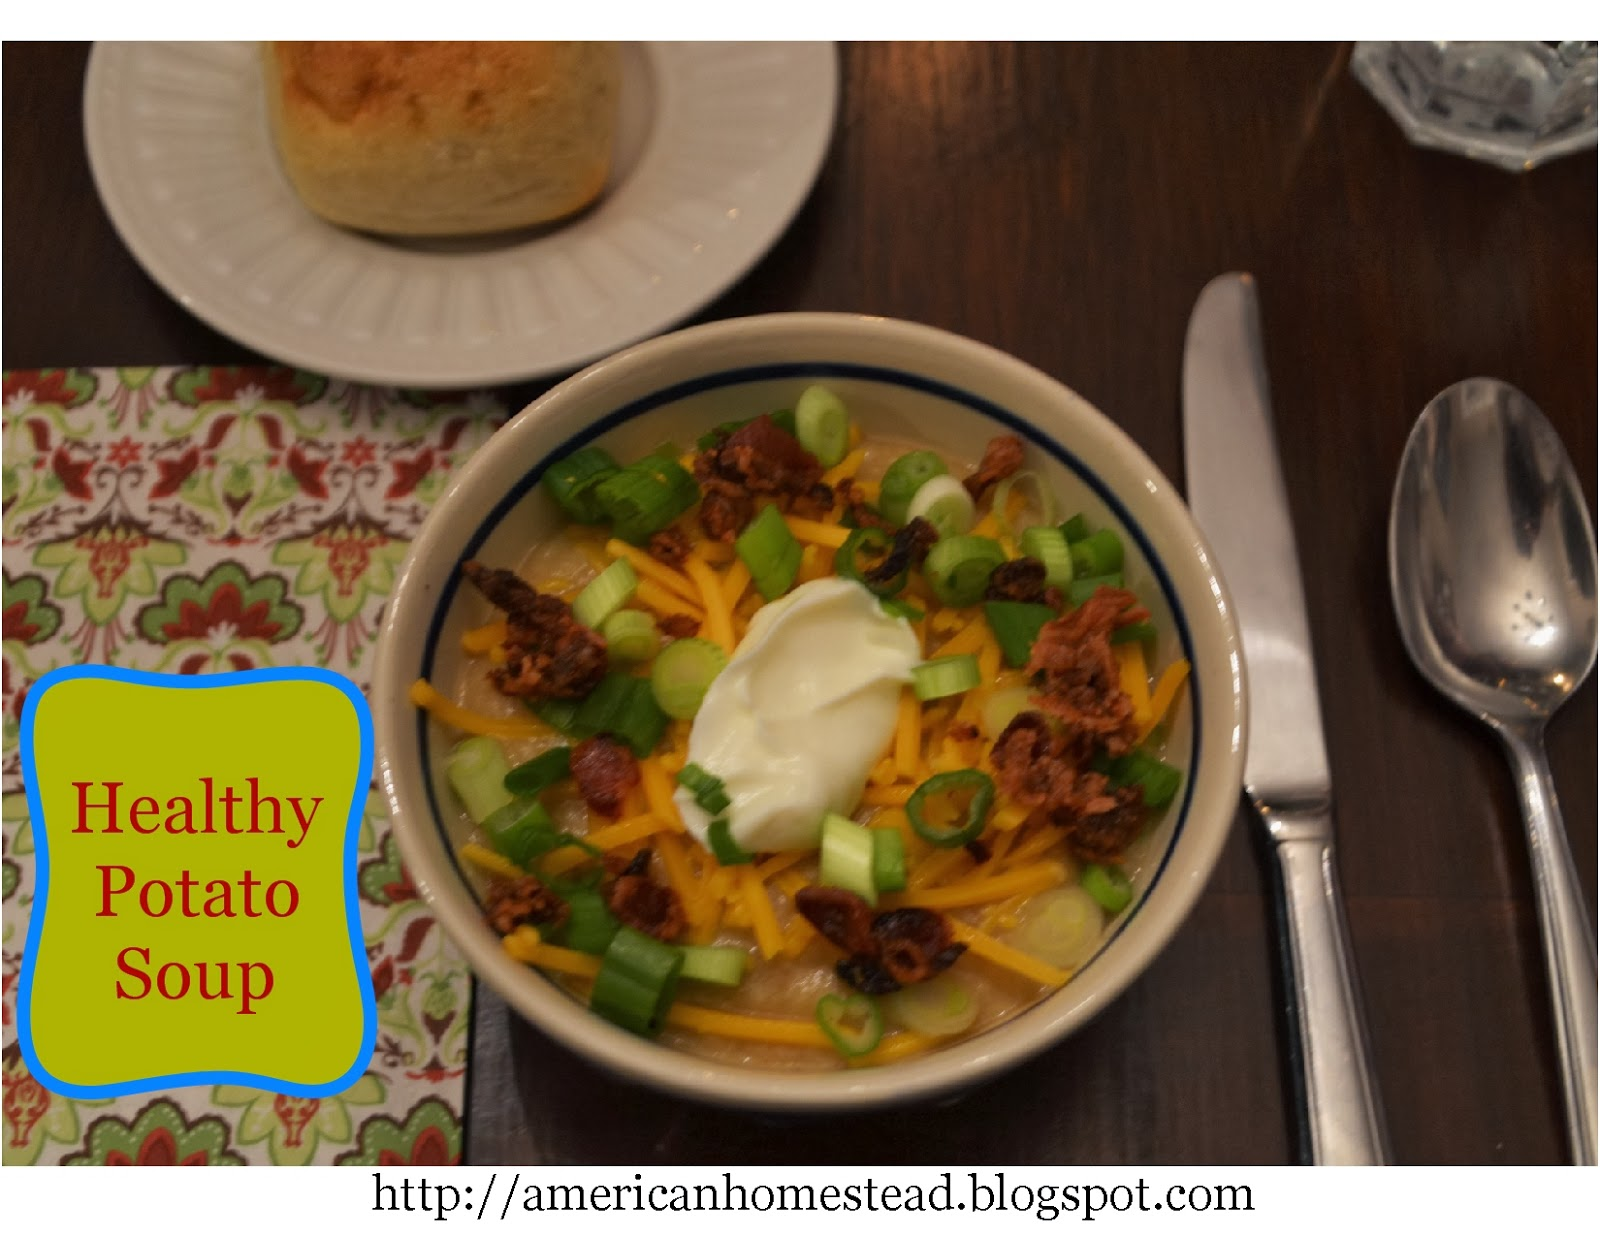 Elleu0027s Kitchen: Healthy Potato Soup